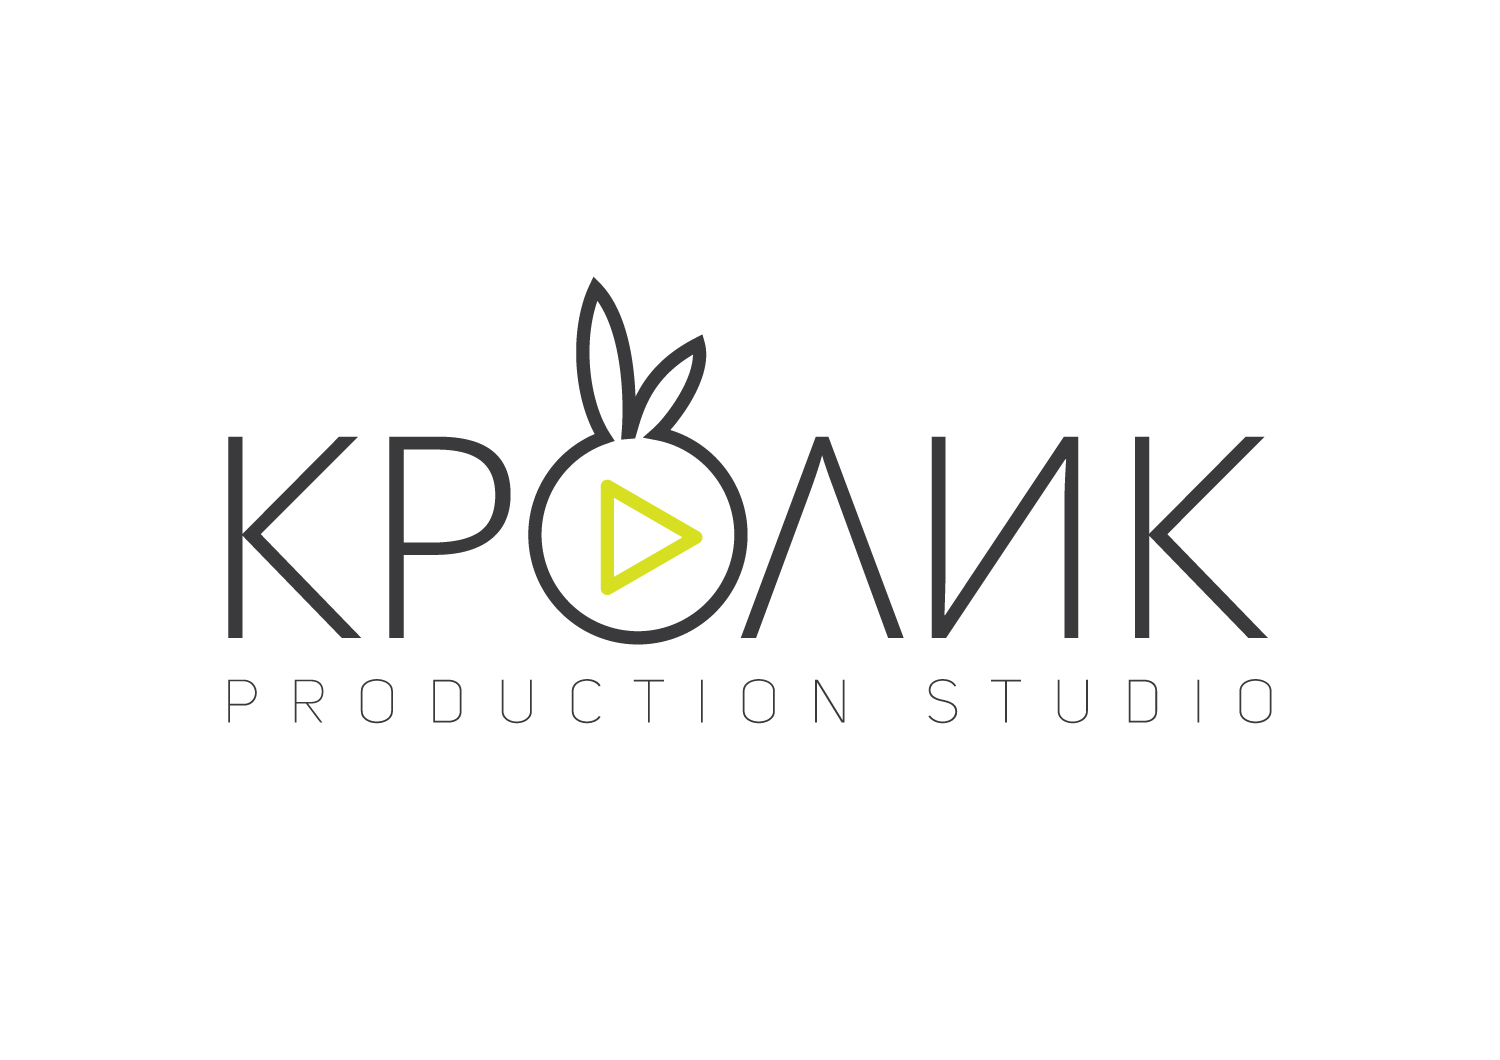 Production studio Krolik